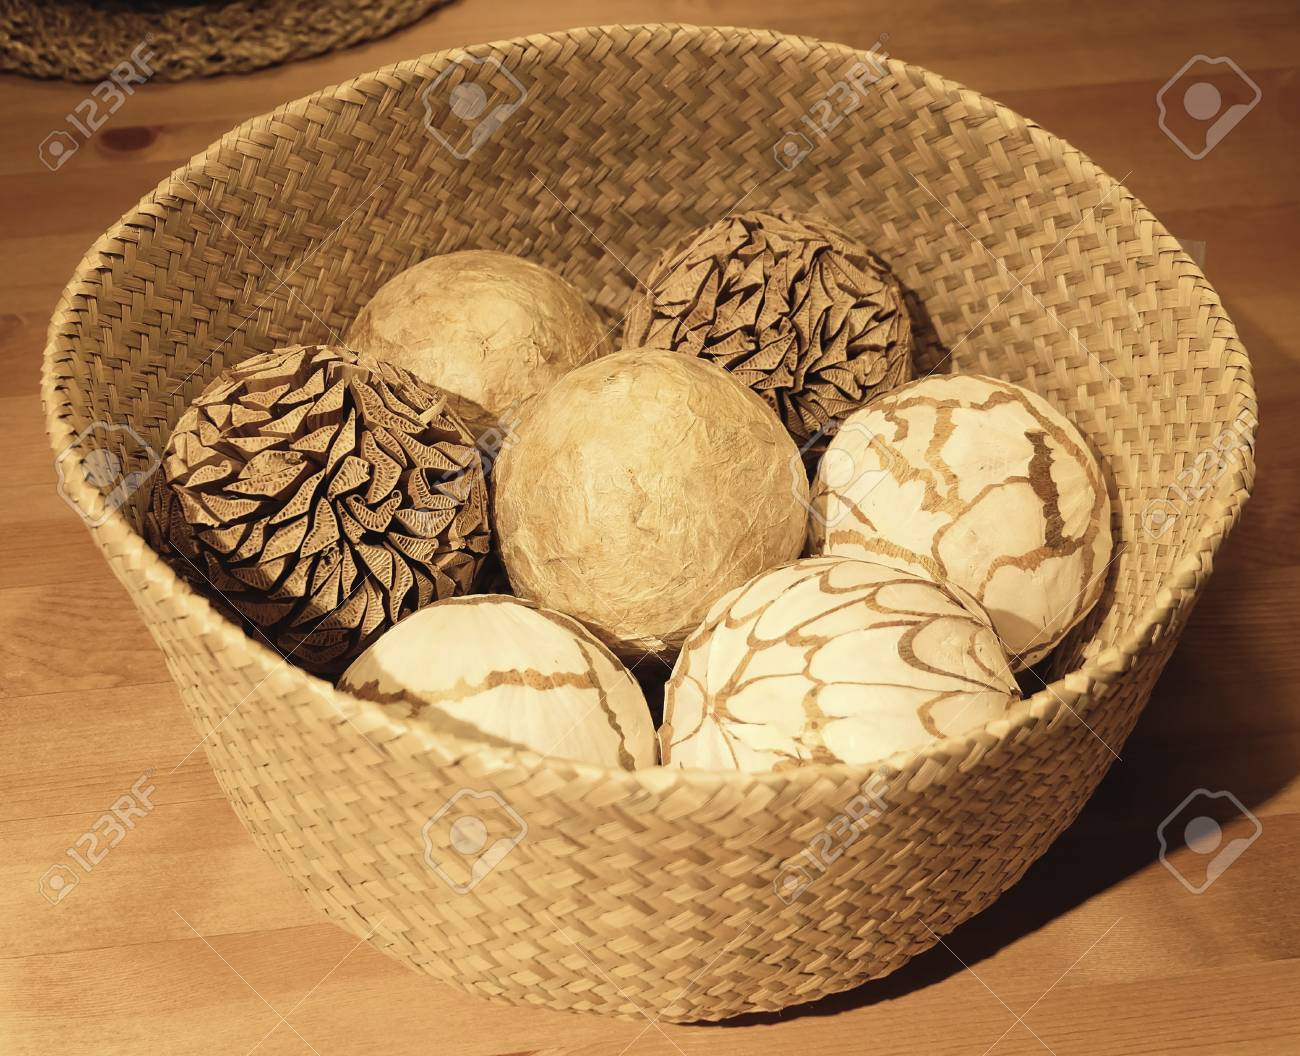 Home Decor Close Up Of Ornamental Decorative Balls In A Woven Wickers Basket Used For